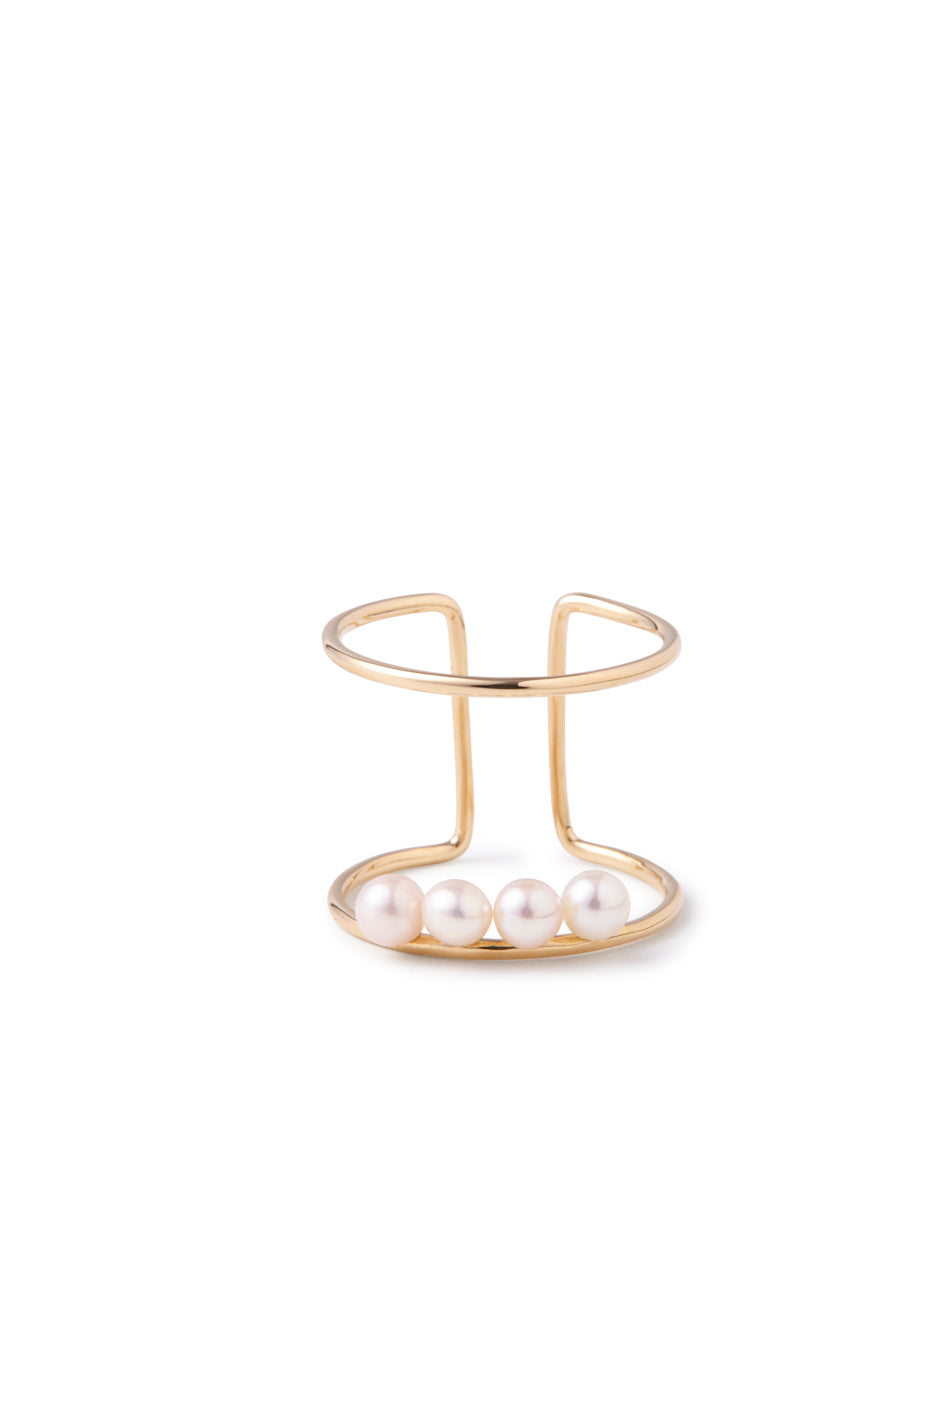 14k Gold and Japanese AKOYA Pearl Cocktail Ring